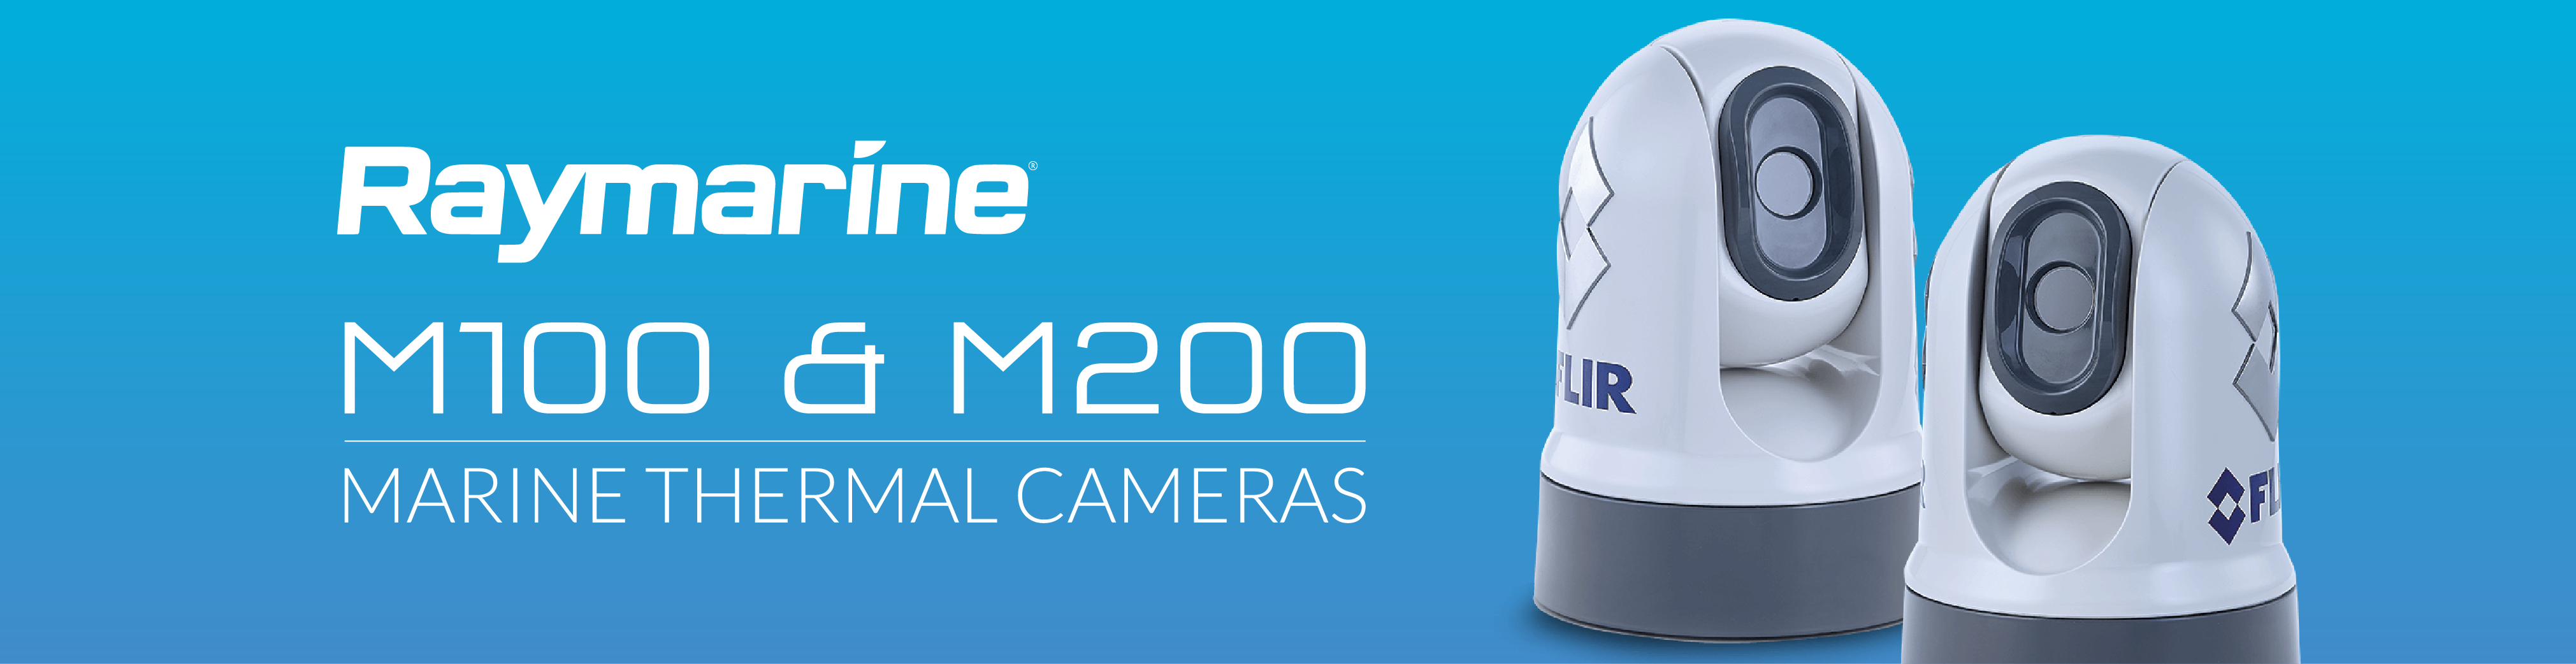 ray marine thermal cameras m100 m200 banner